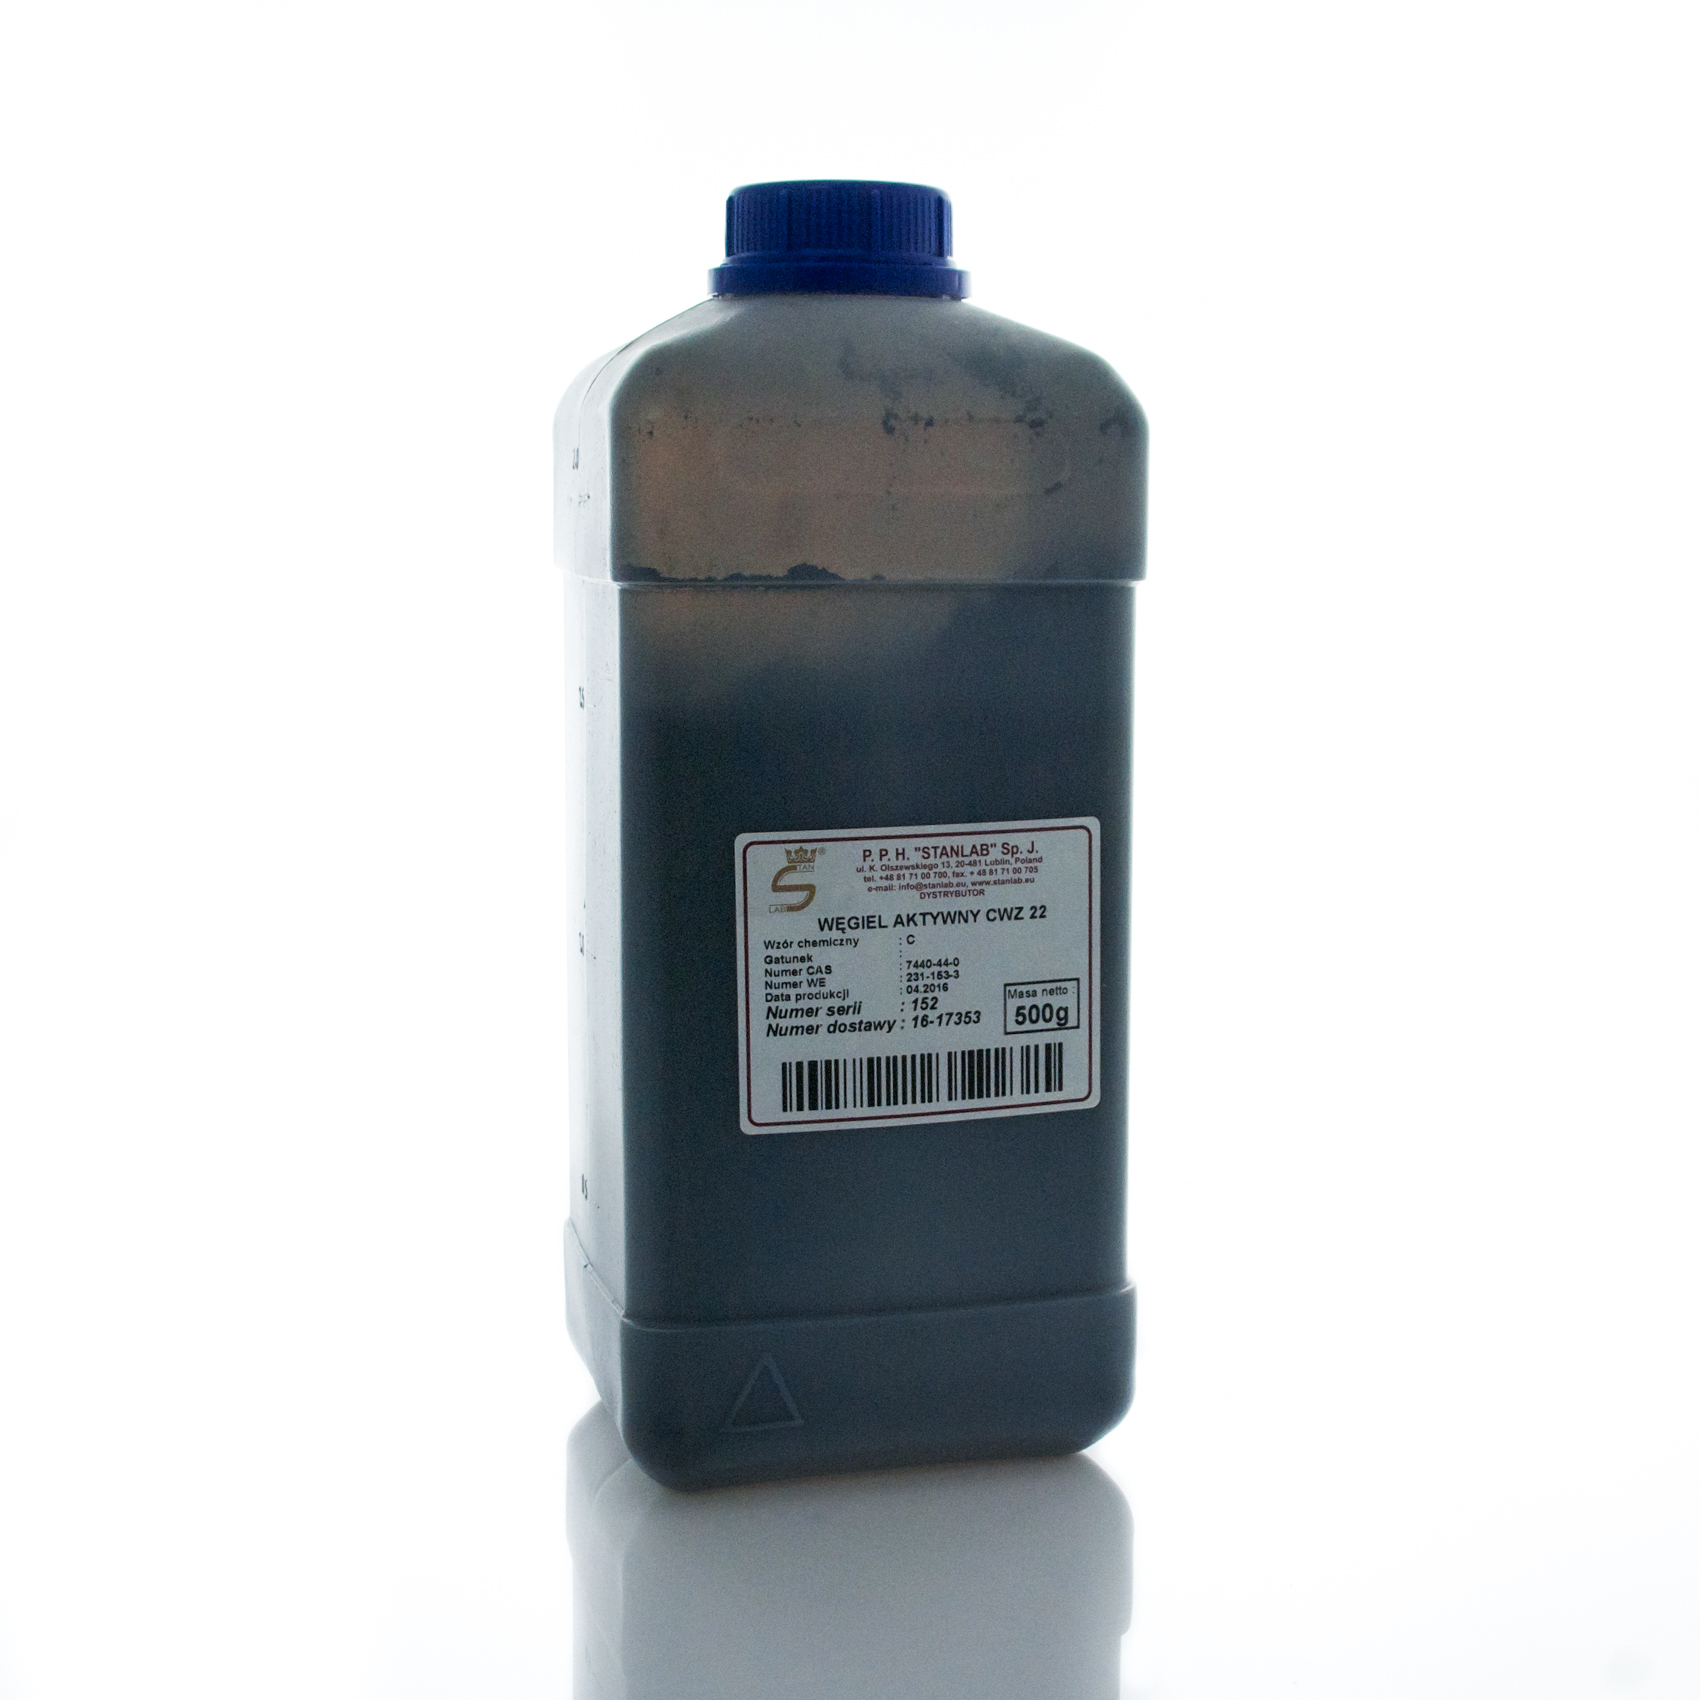 Activated carbon CWZ 22